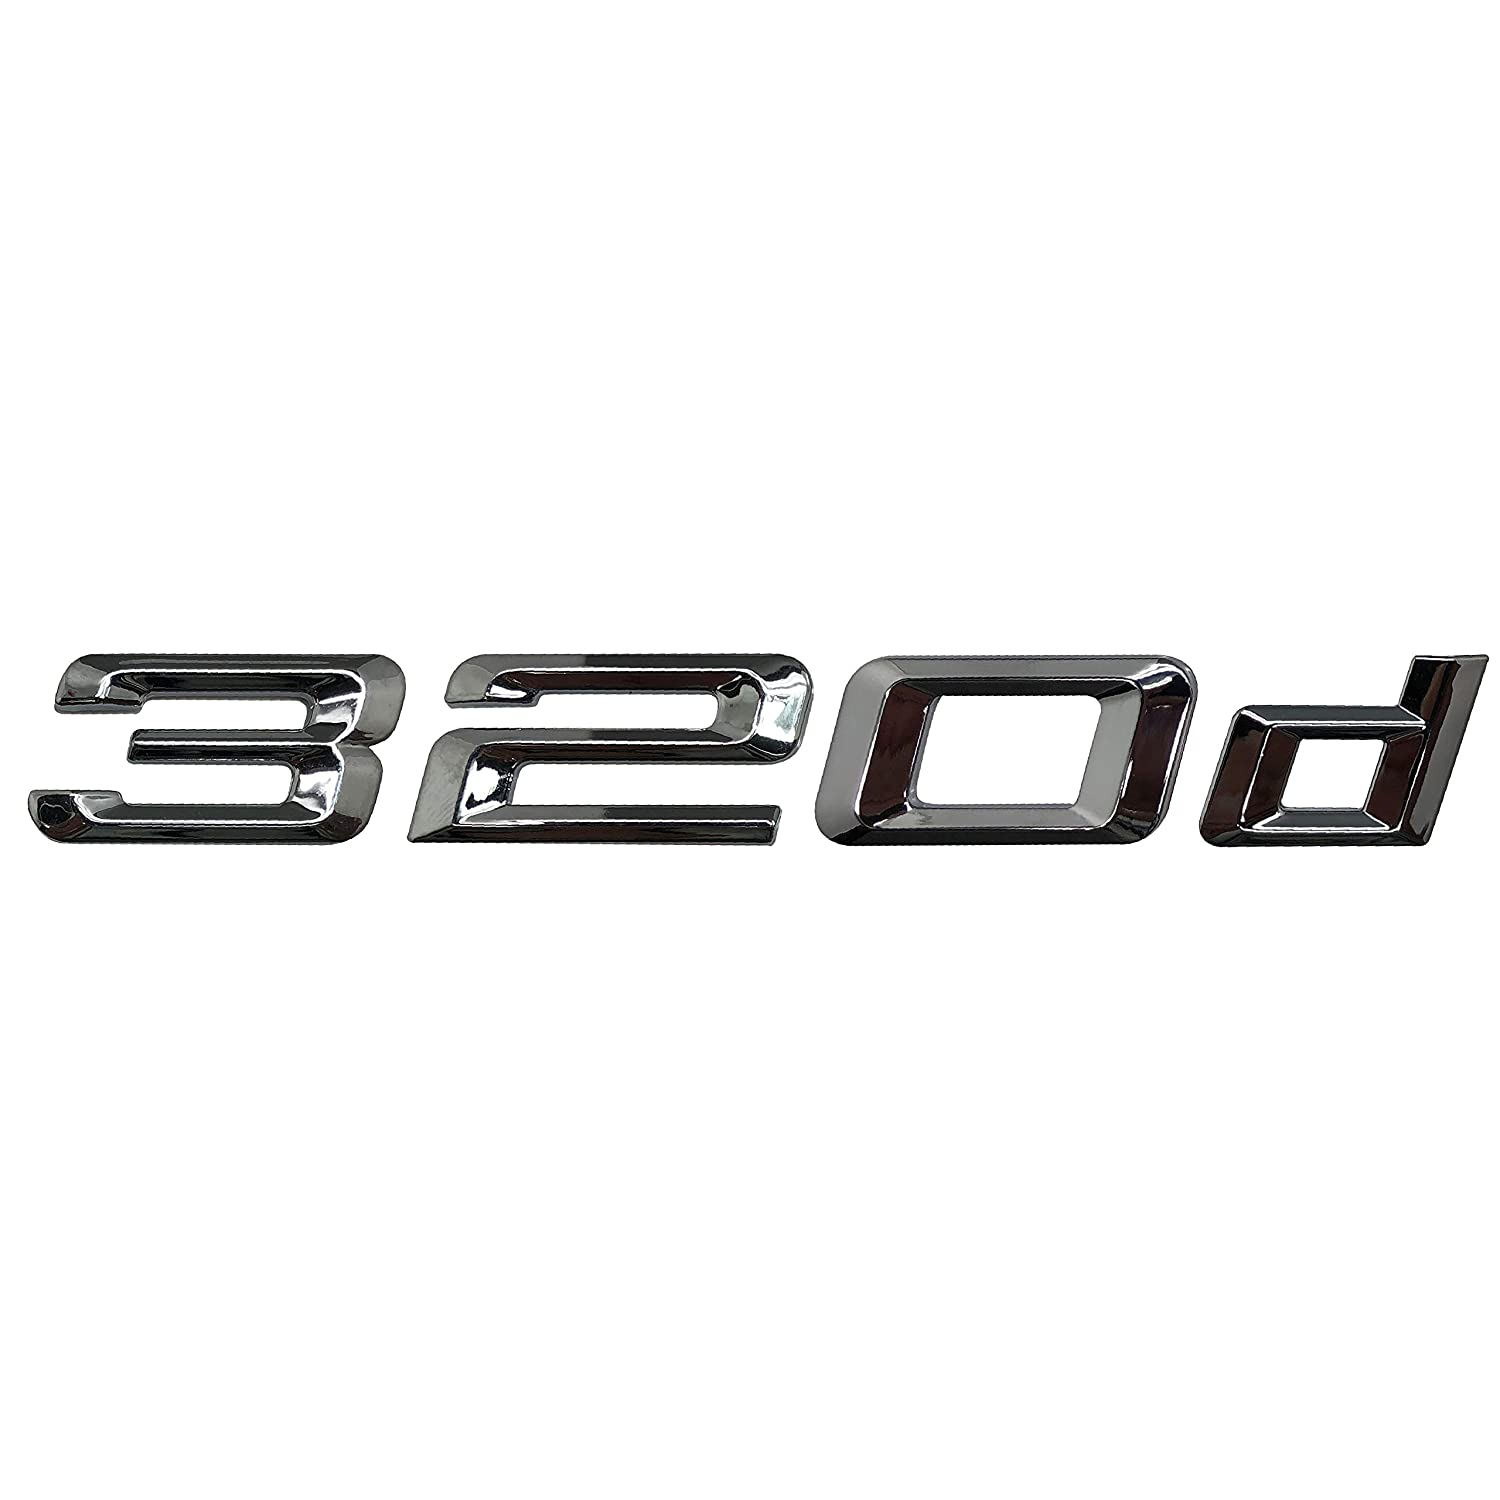 F31 G20 Models E93 F30 E46 Silver Cromo 320d Lettering Trasero Boot Lid Trunk Badge Emblema For 3 Series E36 E90 E91 F34 E92